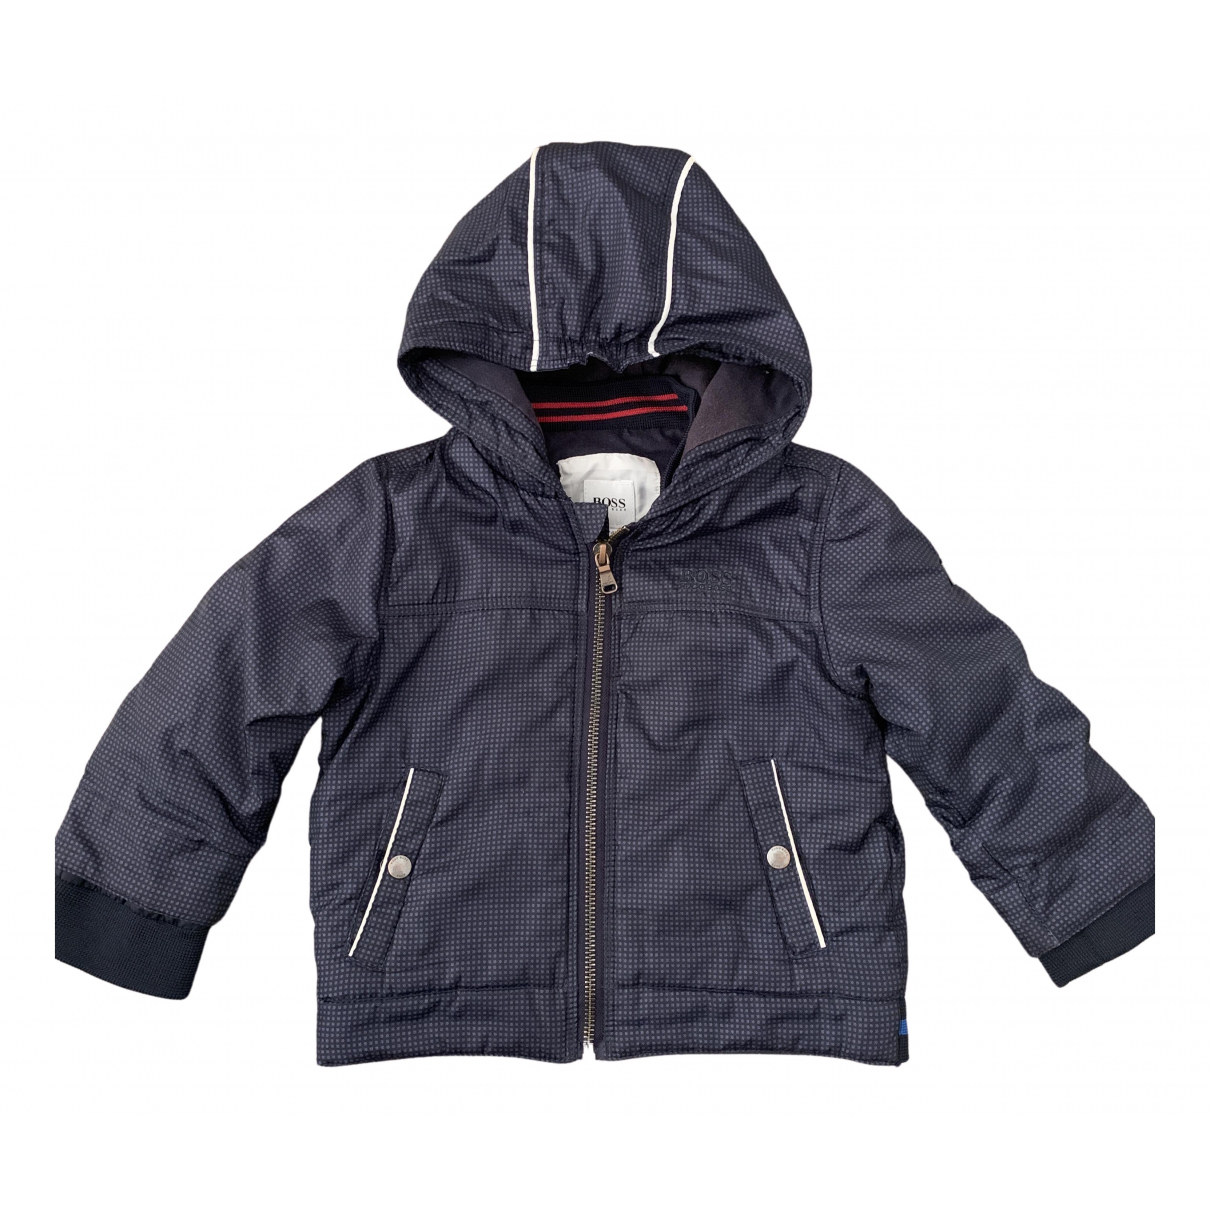 Boss N Navy jacket & coat for Kids 18 months - up to 81cm FR